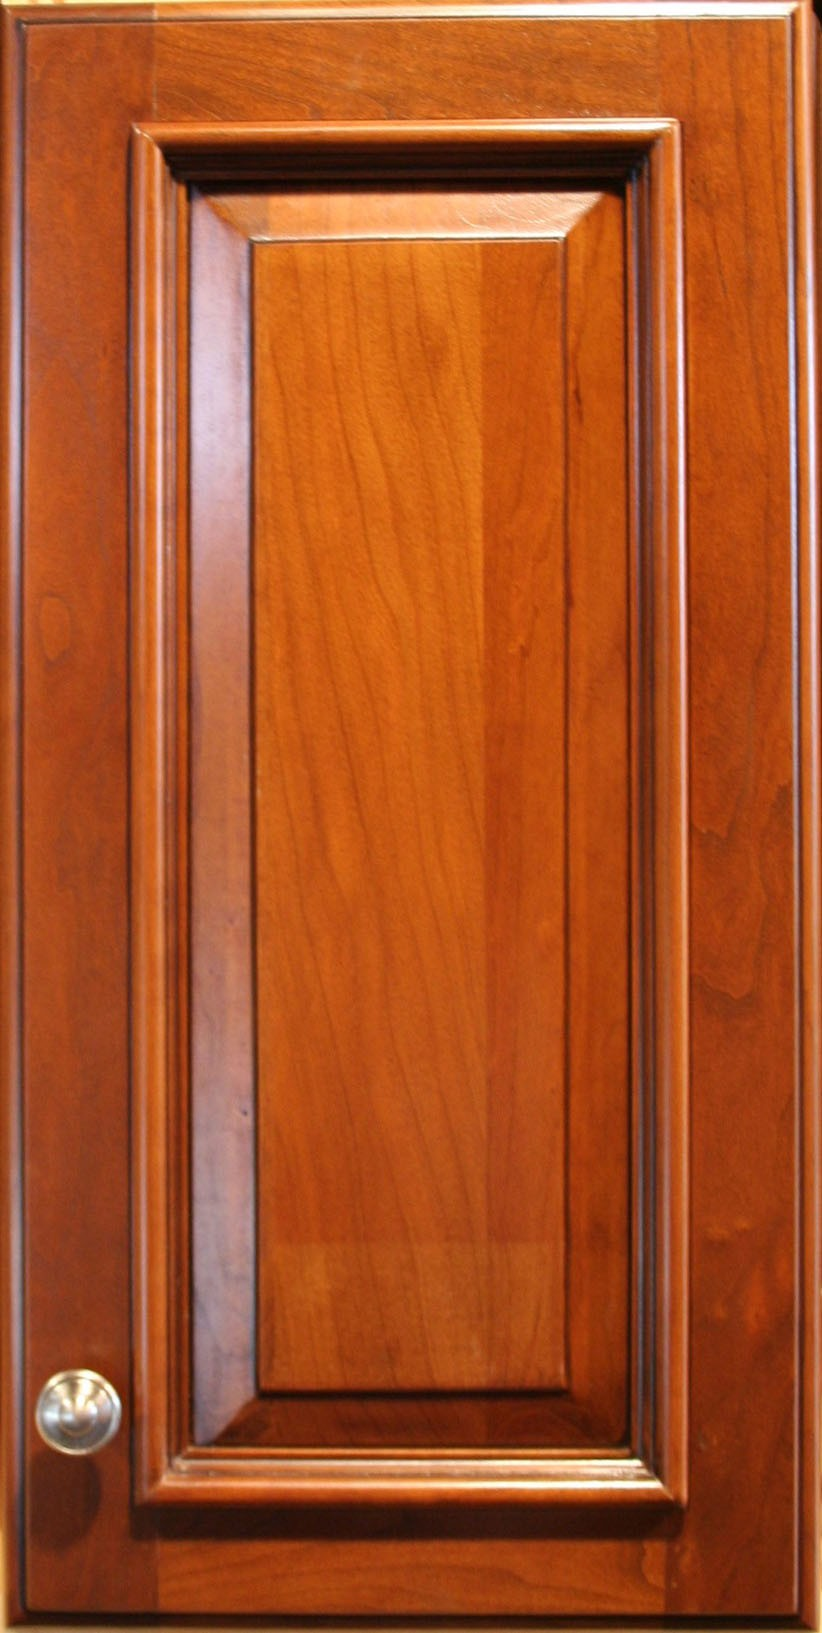 Beveled Door Edge \\\\\\\\\\\\\\\\\\\\\\\\\\\\\\\\u0026 Door Styles 822x1633. Image Number 76 Of Beveled Edge . & Beveled Door \u0026 Beveled Edge Mirror Solid Core MDF Interior\